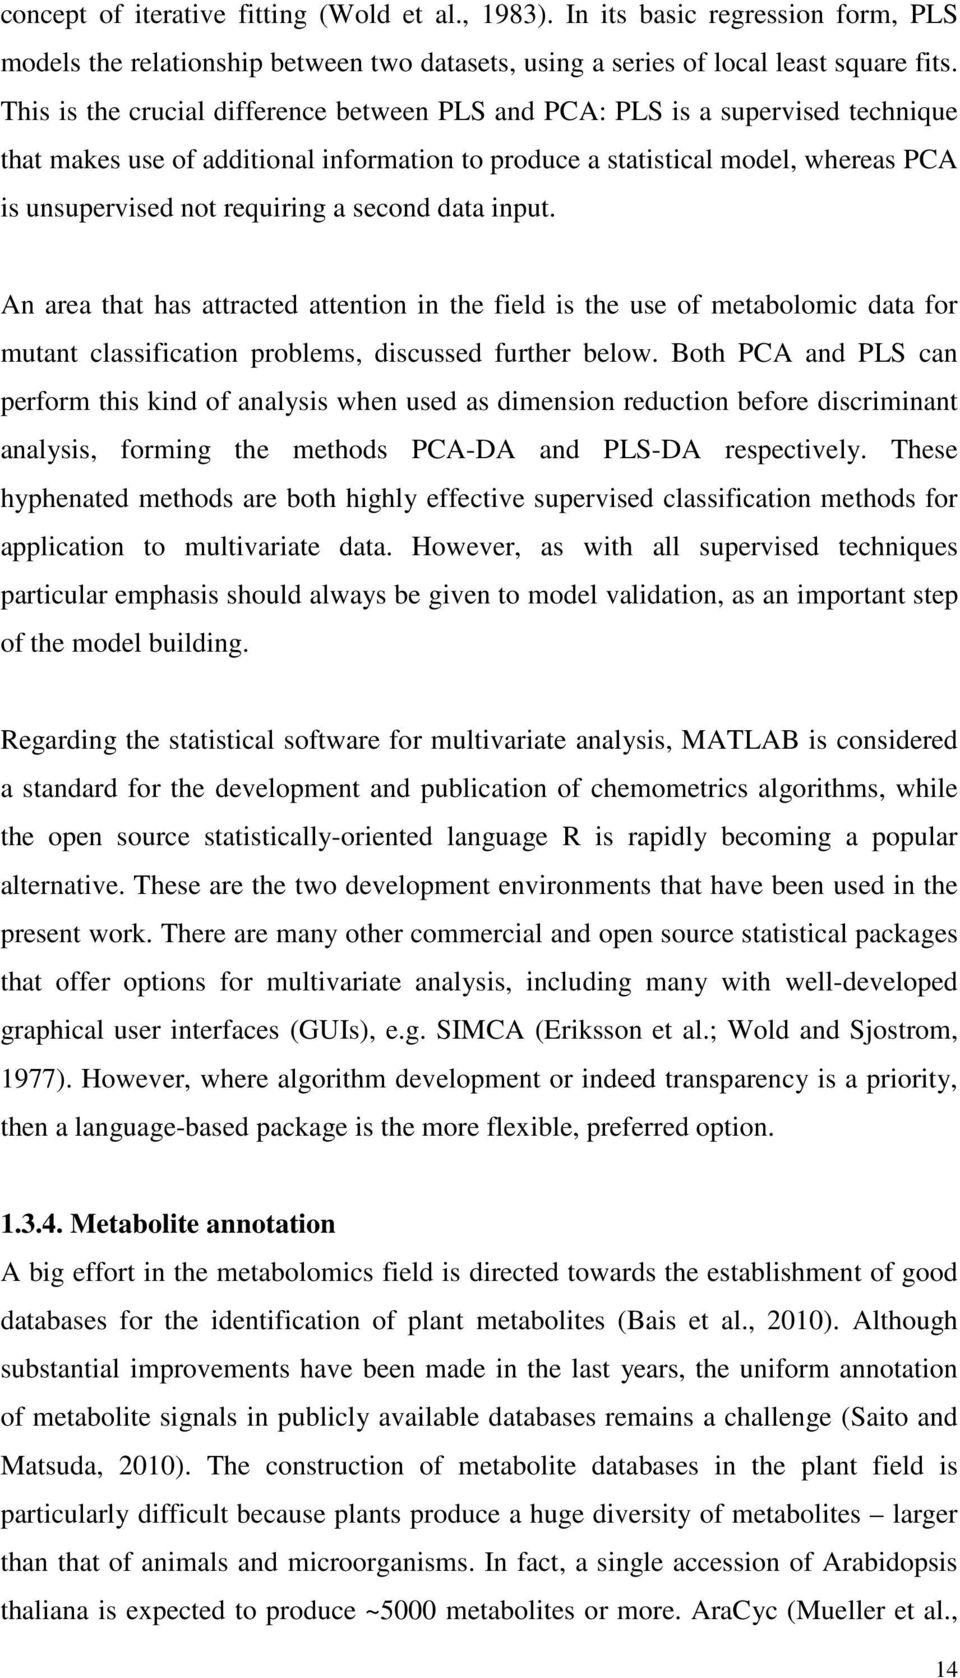 second data input. An area that has attracted attention in the field is the use of metabolomic data for mutant classification problems, discussed further below.